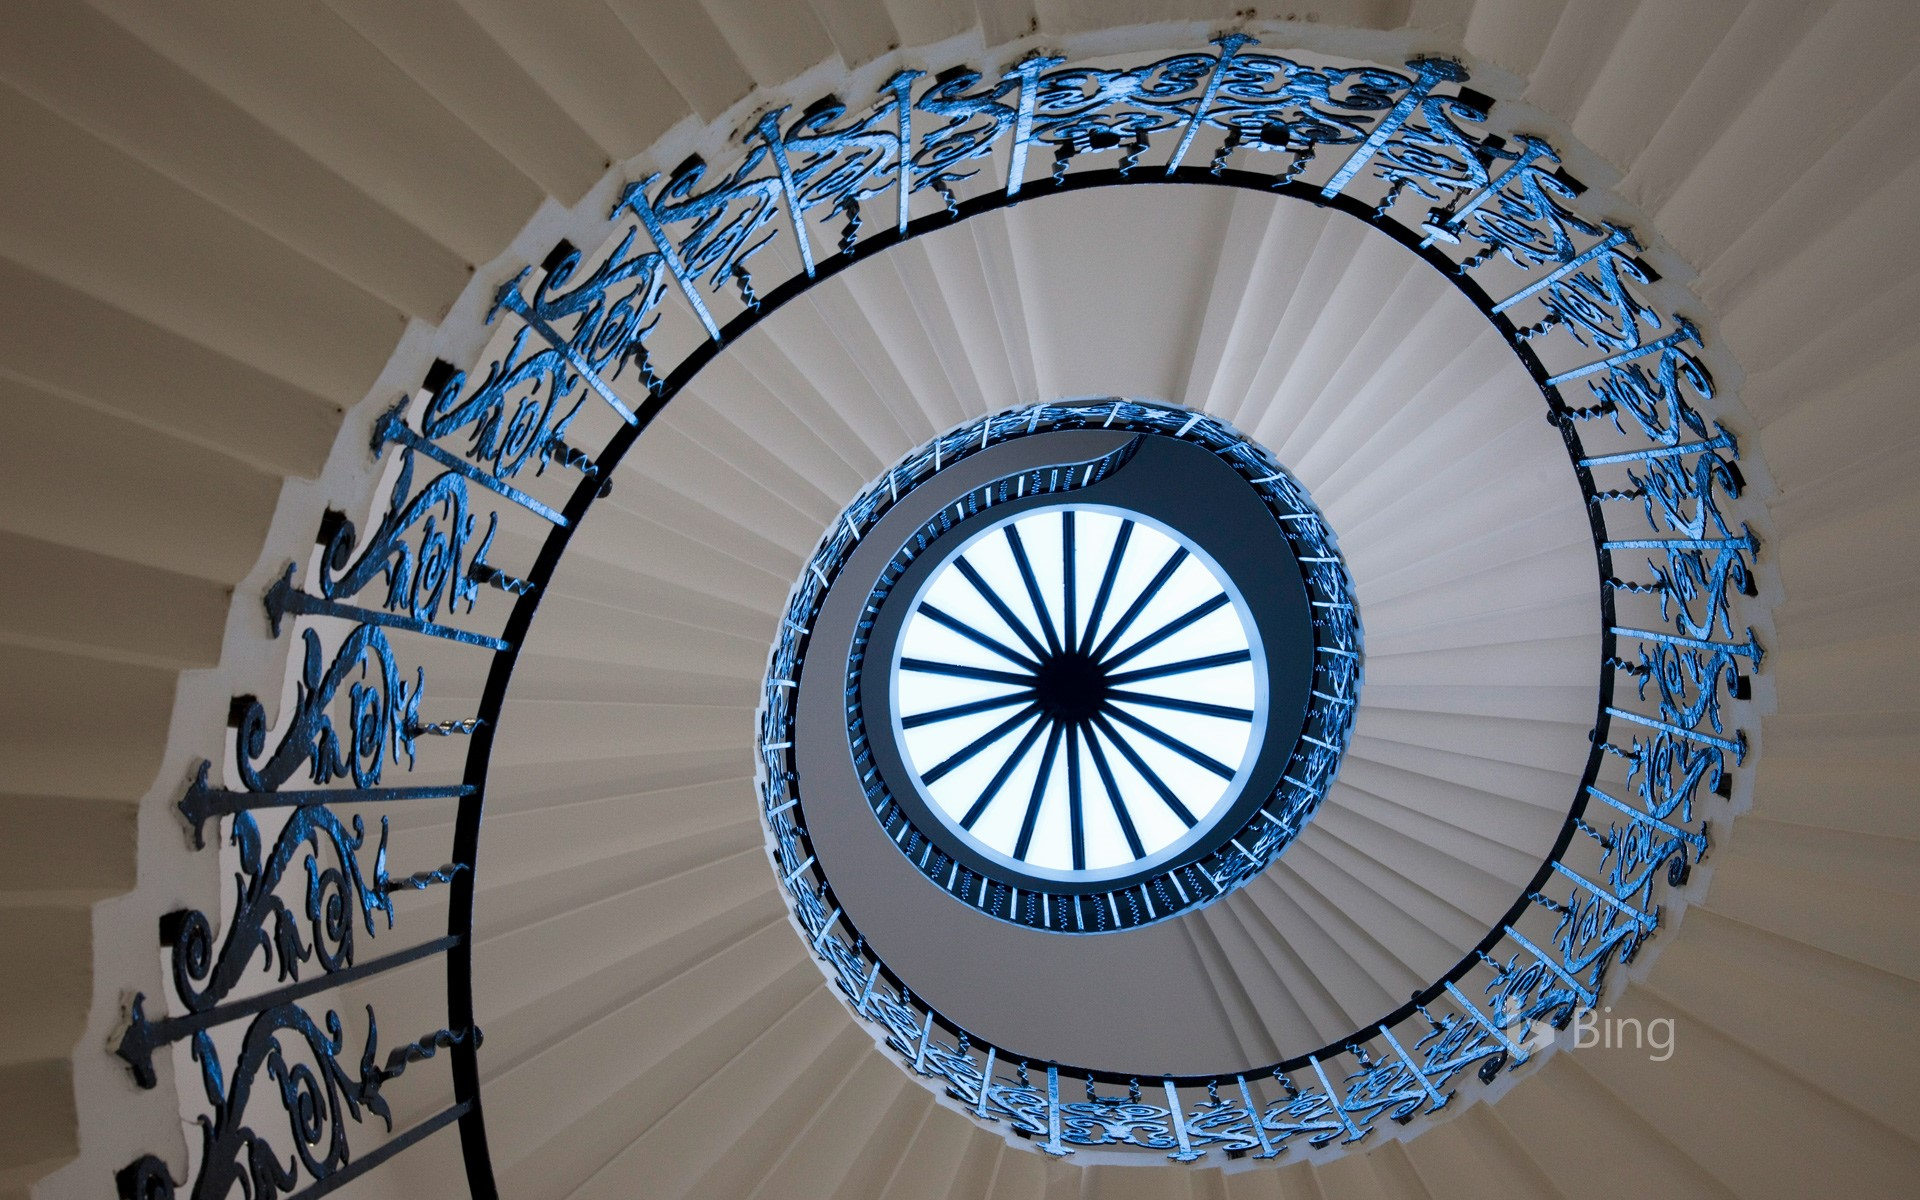 The Tulip Stairs at Queen's House in Greenwich, London